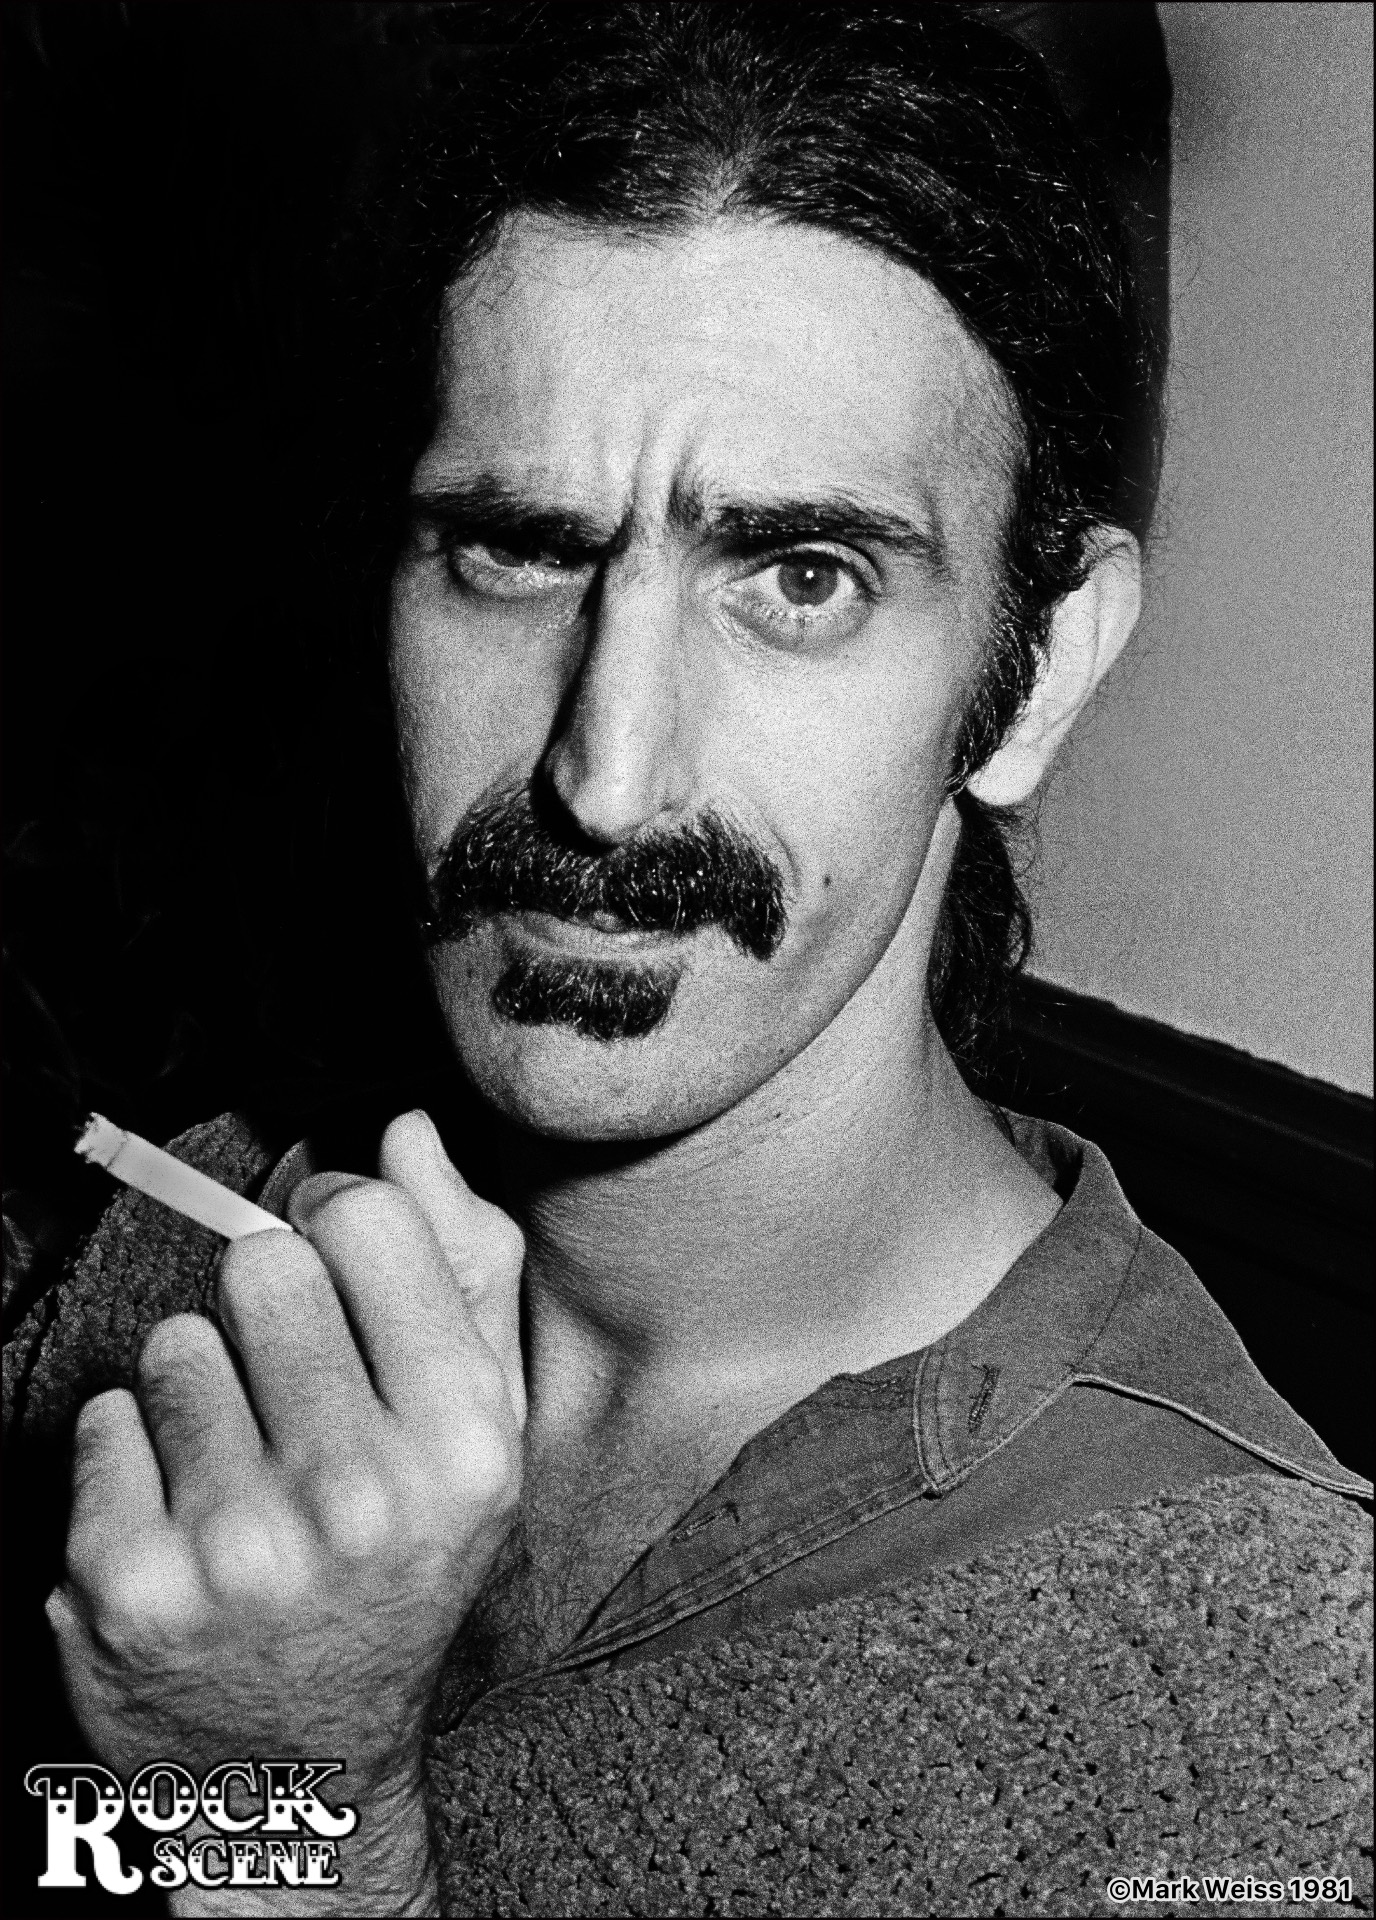 Frank Zappa  / Rest In Peace / December 21, 1940 – December 4, 1993